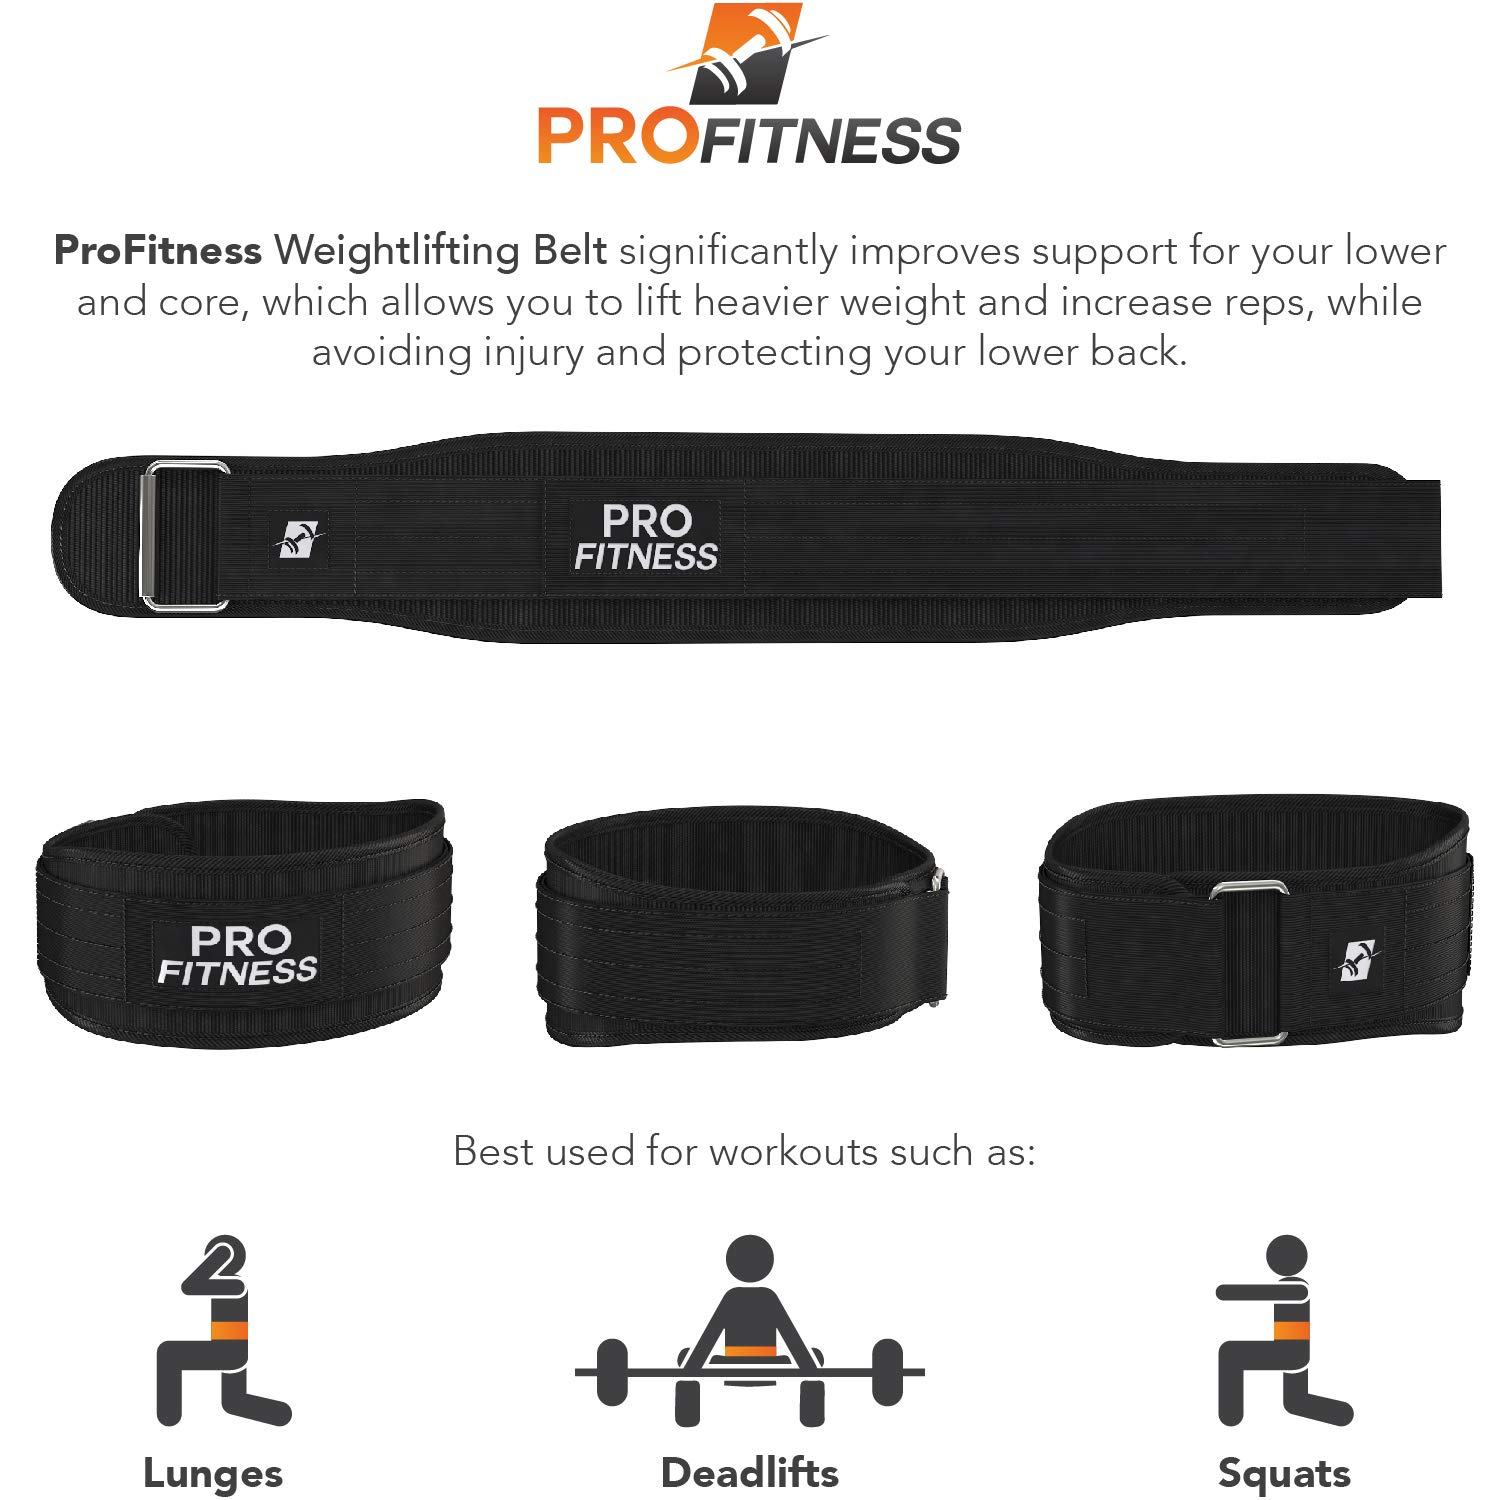 ProFitness Weight Lifting Belt 4 Inchs Wide – Comfortable Durable Weightlifting Workout Belt – Great Lower Back Lumbar Support for Squats, Deadlifts, Gym Workouts – for Men Women